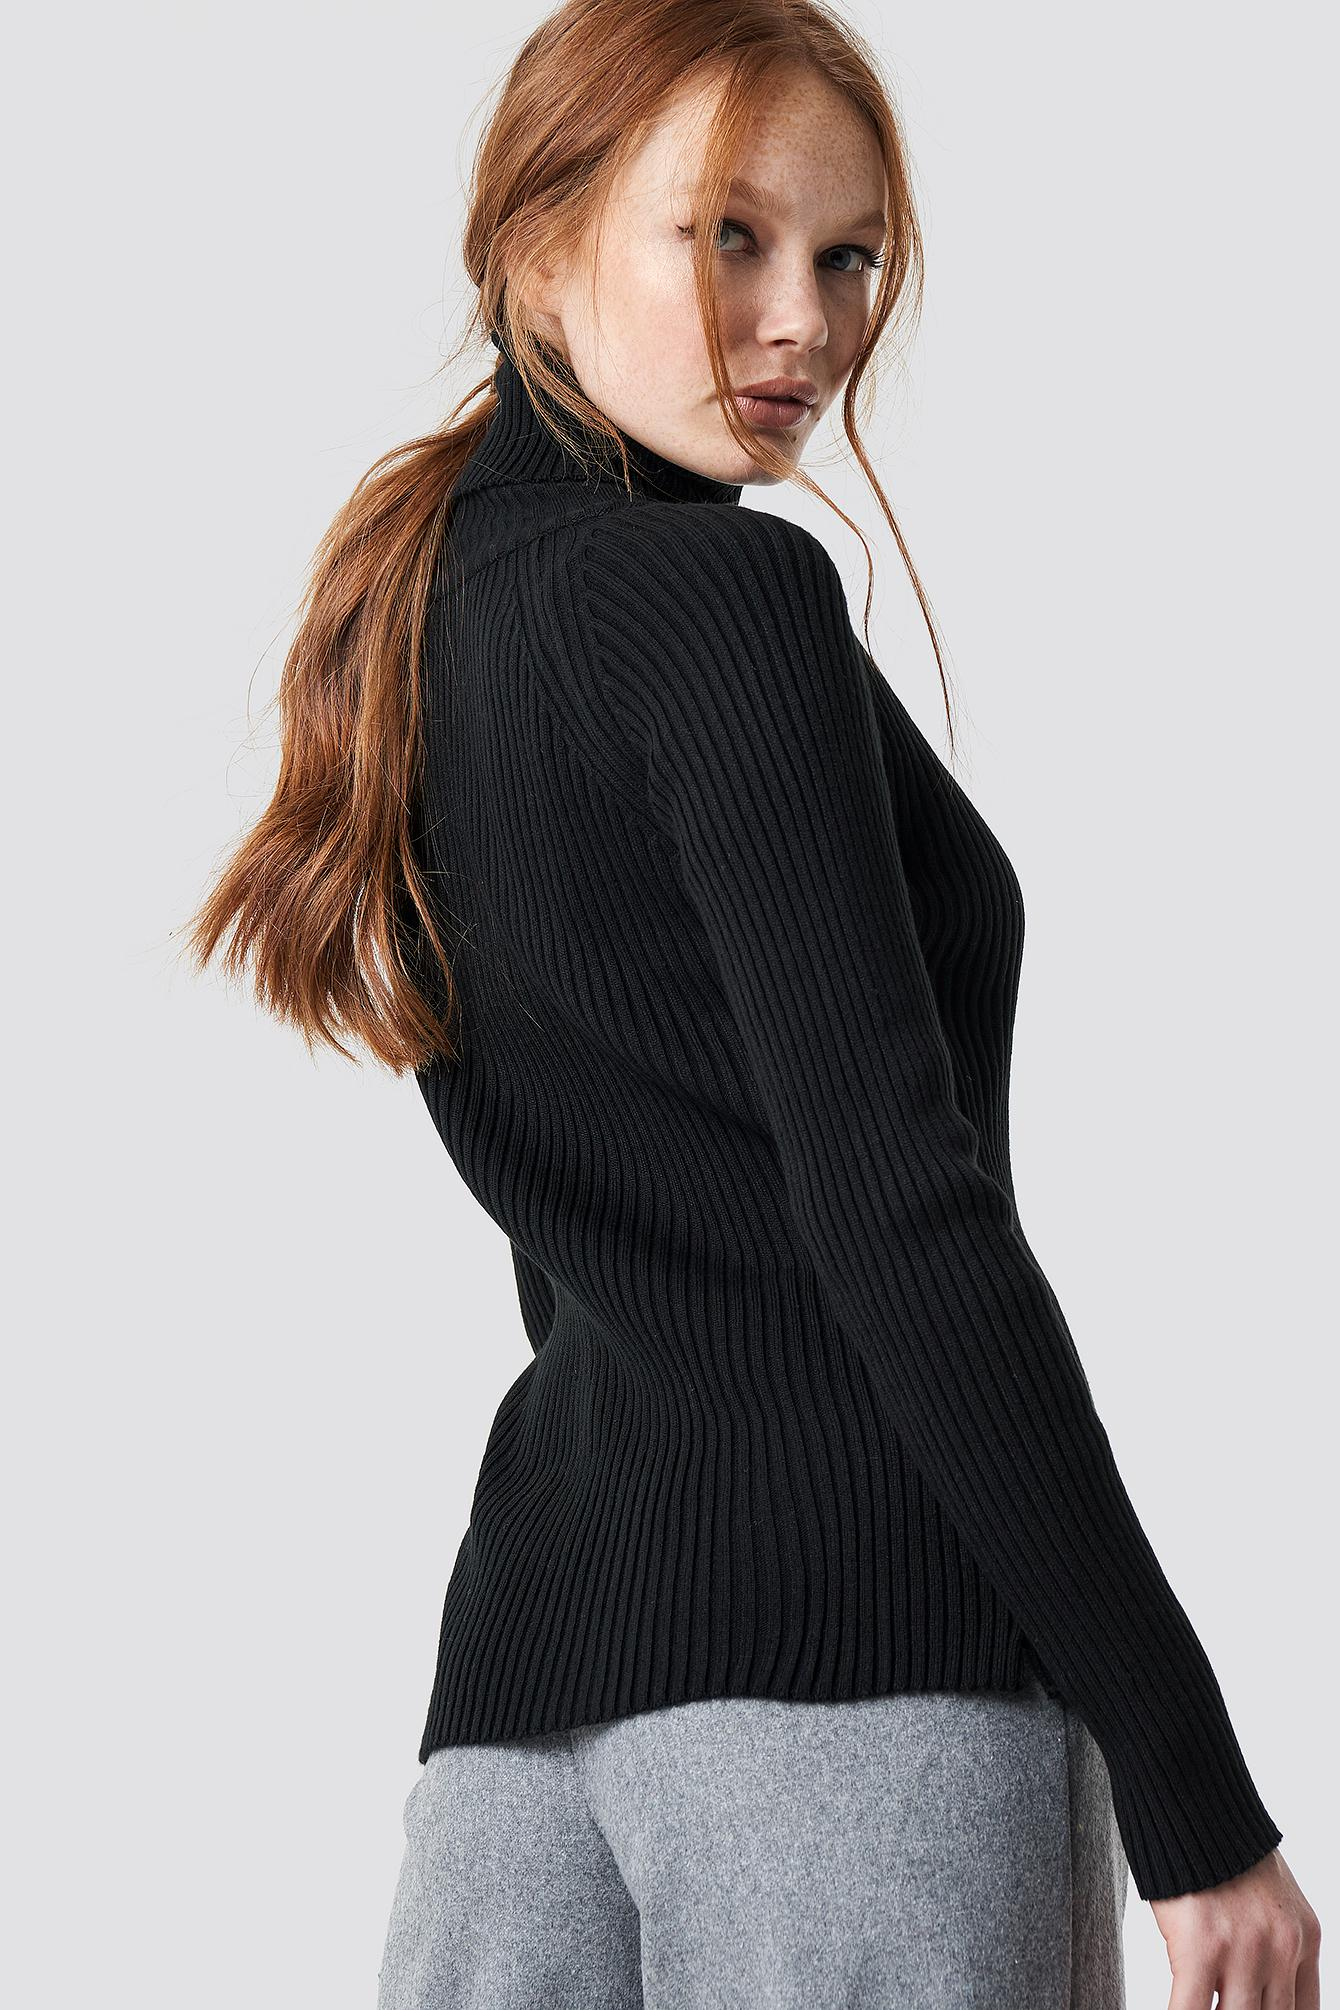 ab8127abb2cca5 Trendyol - Milla Turtleneck Knitted Sweater Black - Lyst. View fullscreen